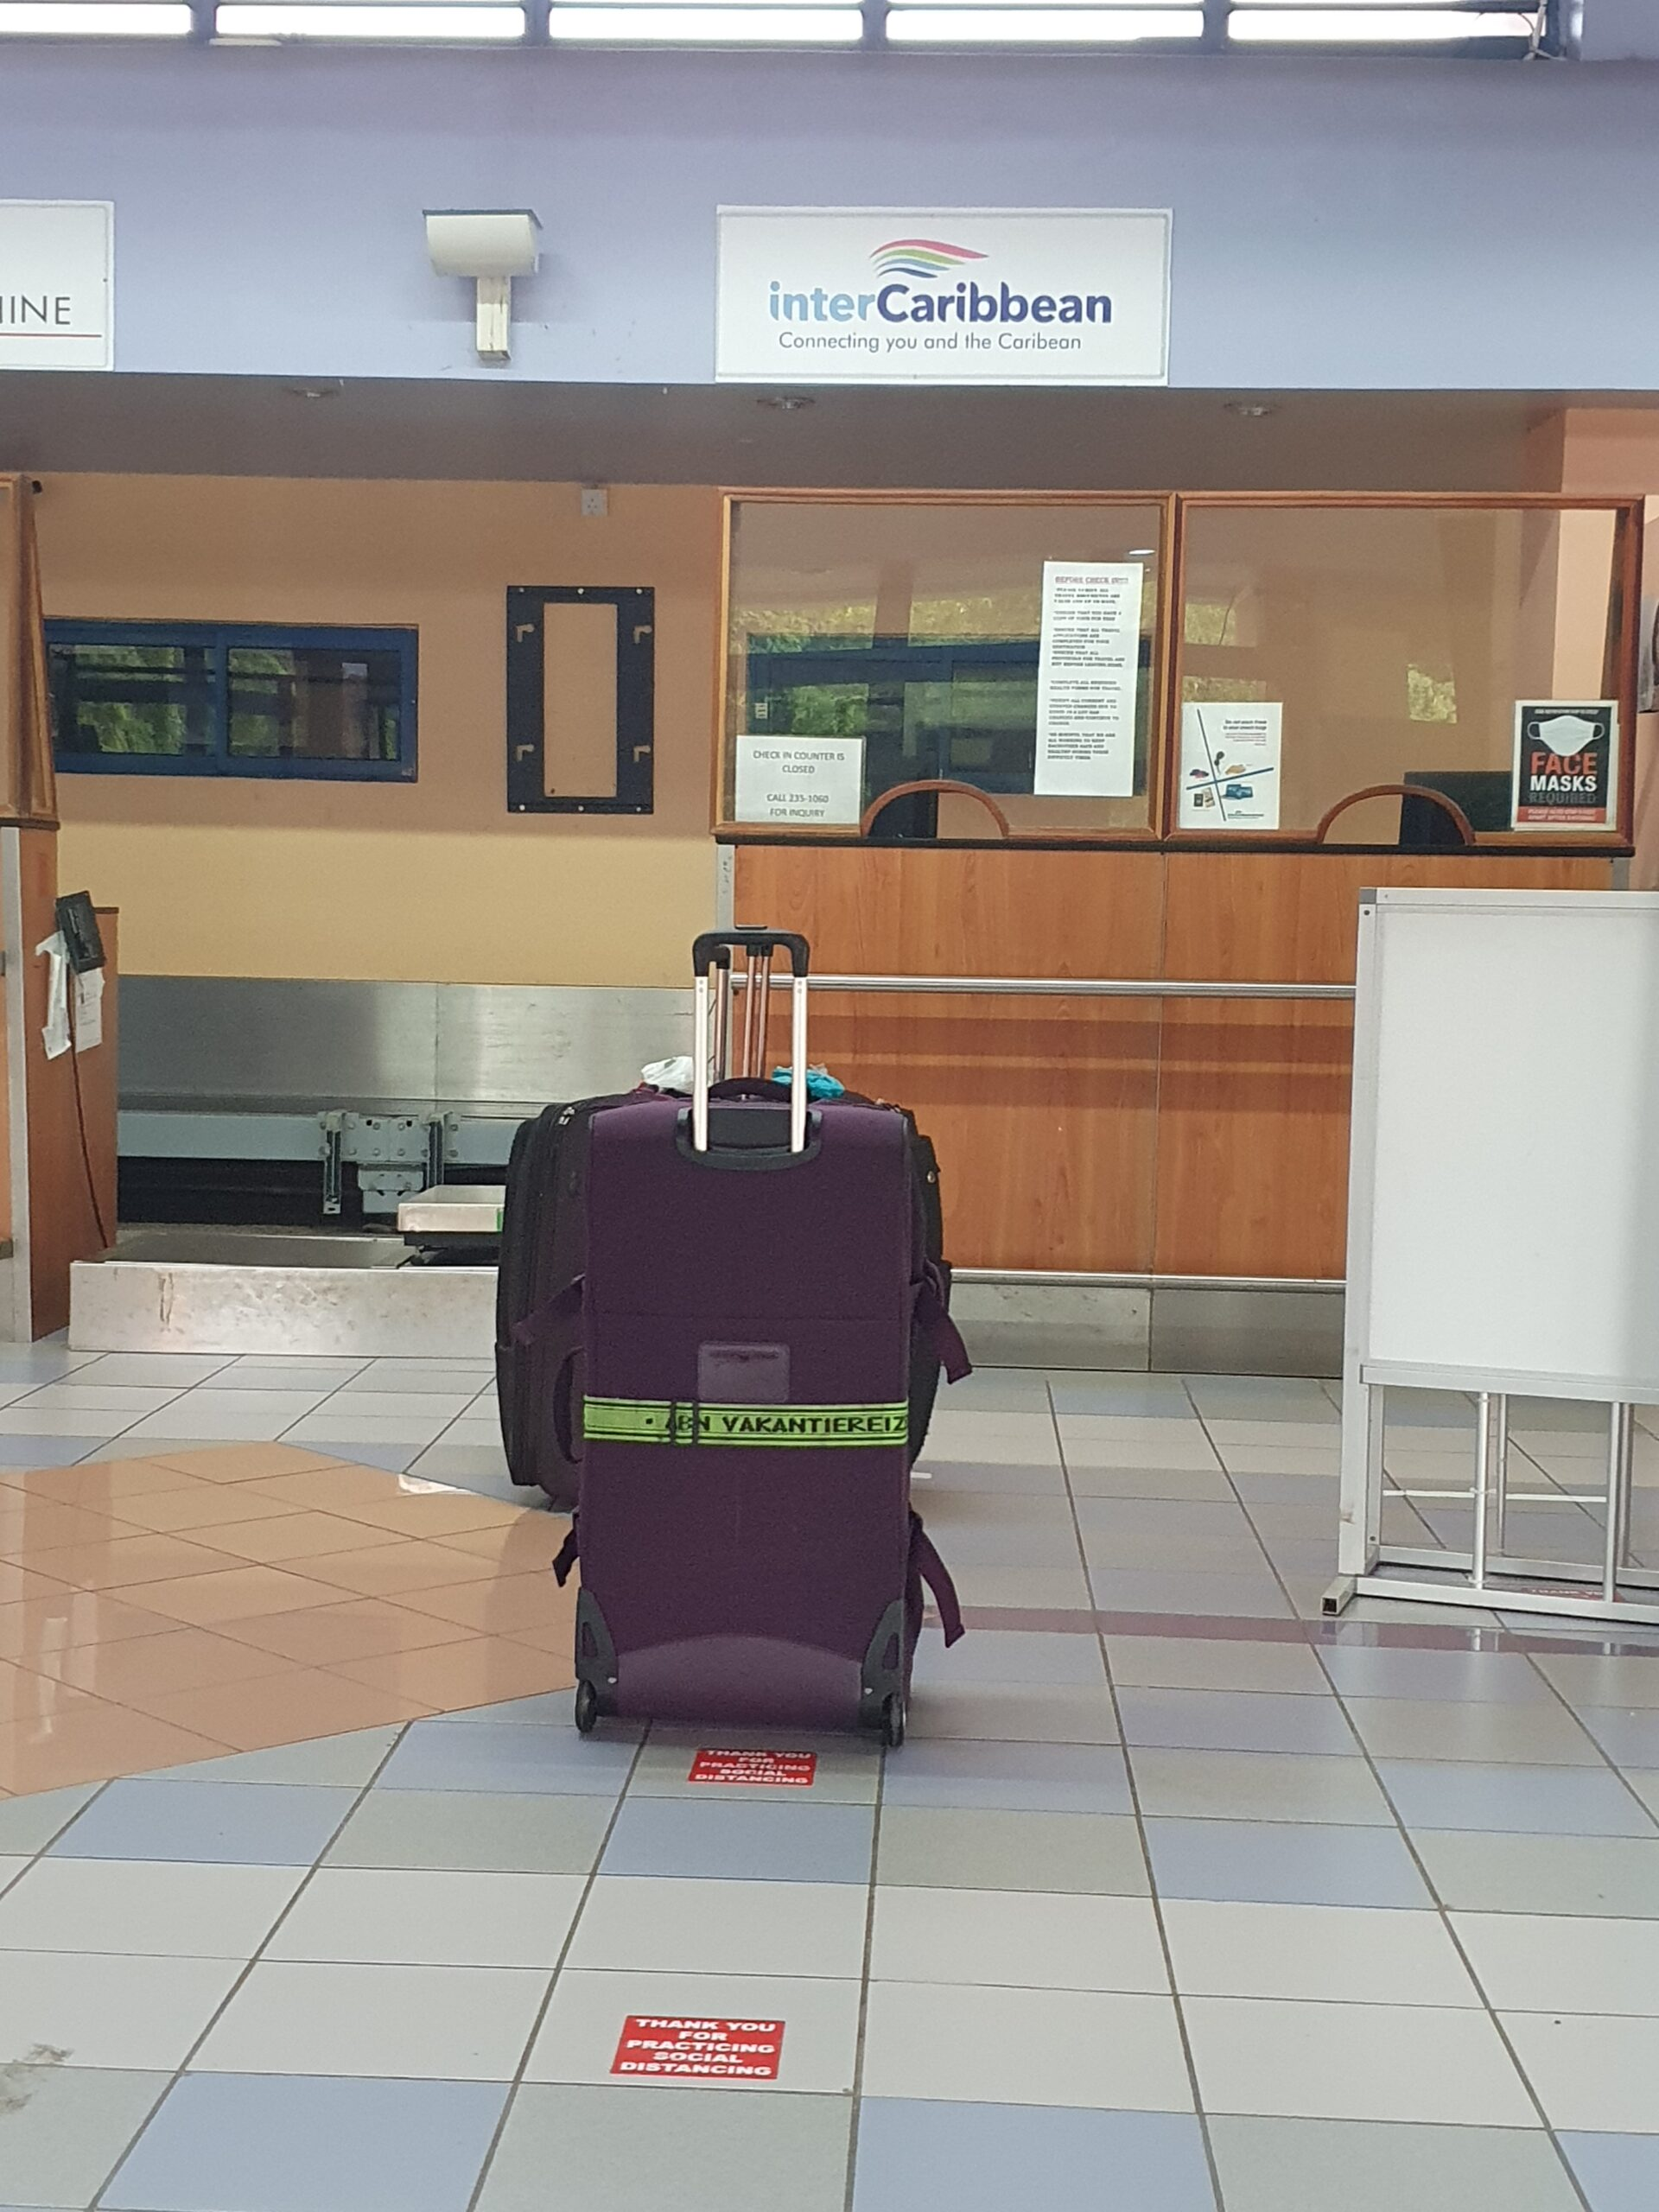 My suitcase waiting for check in.